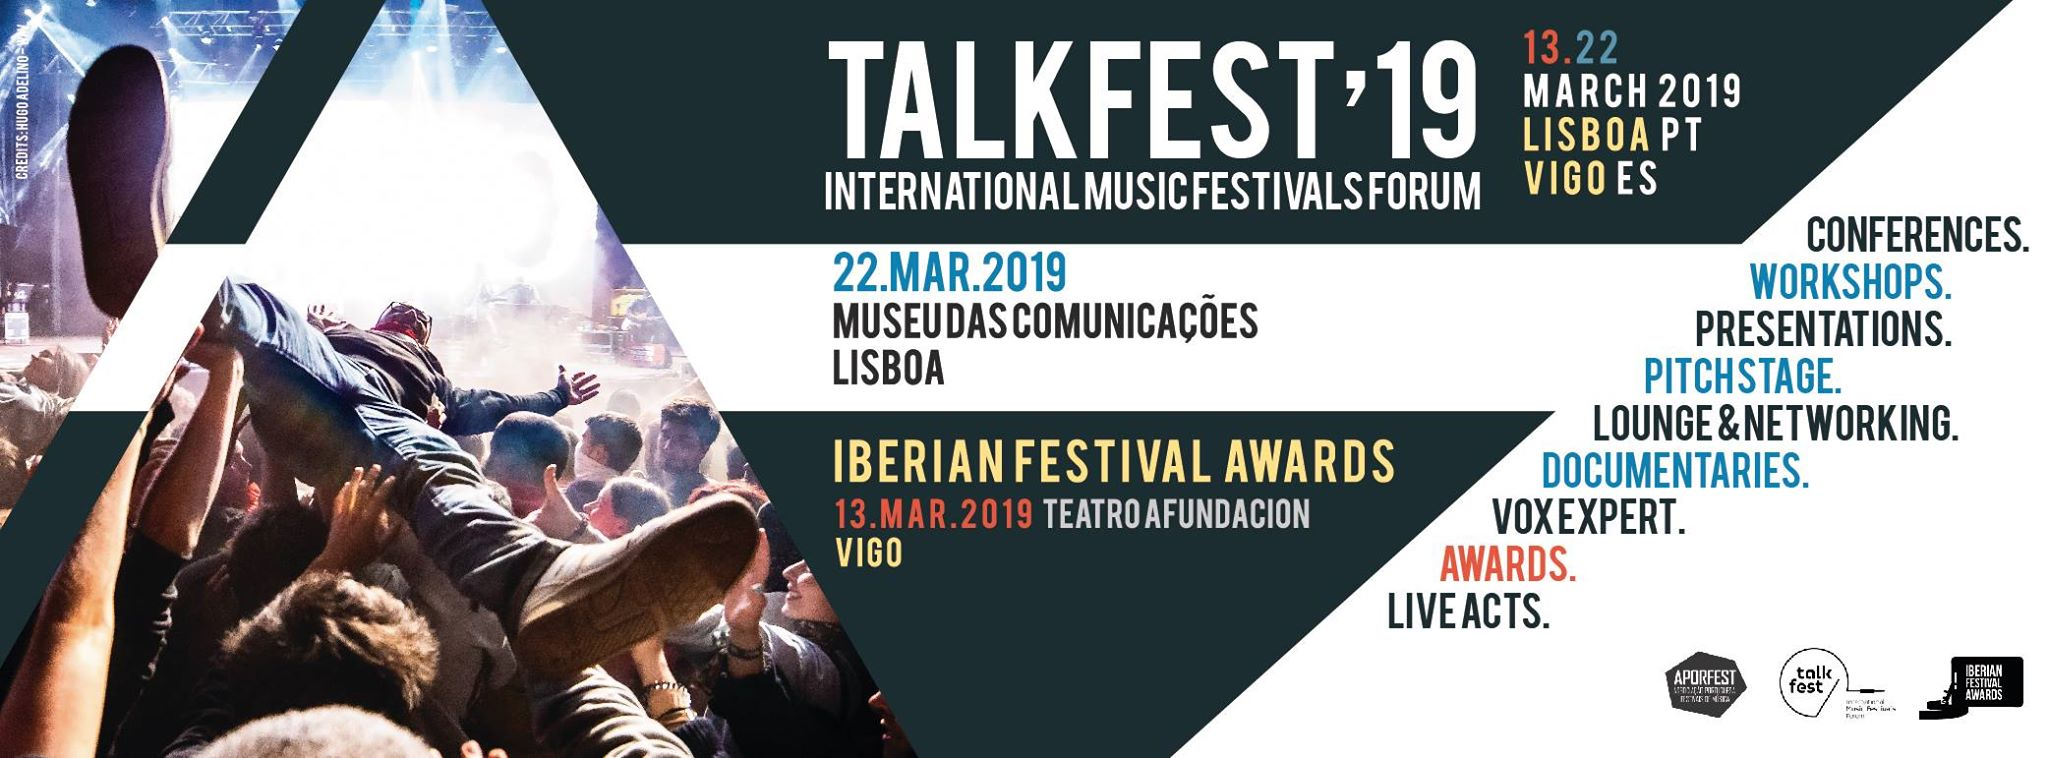 DECO no TALKFEST 2019!